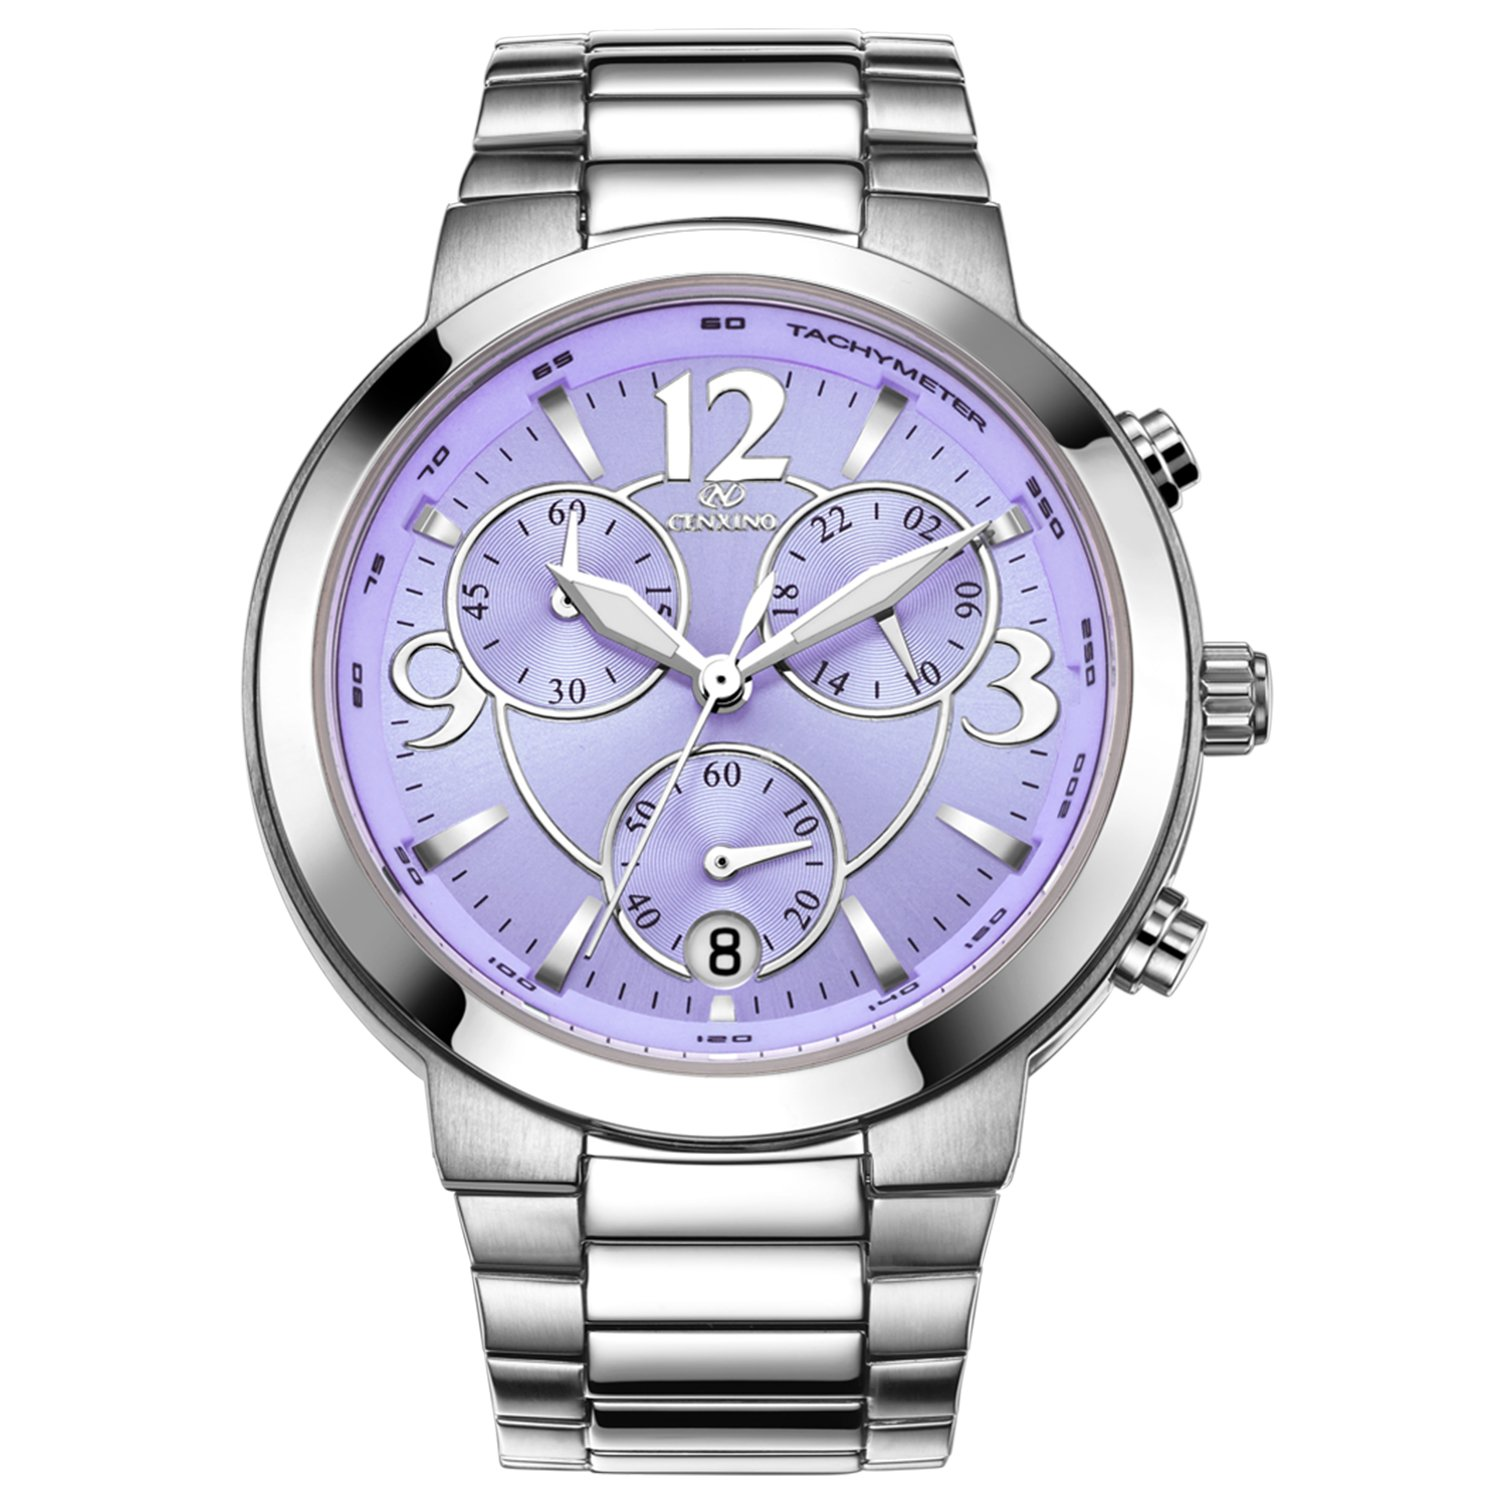 CENXINO Women's Elegant Luxury Chronograph Wrist Watches with Date Calendar and Stainless Steel Band (Purple)